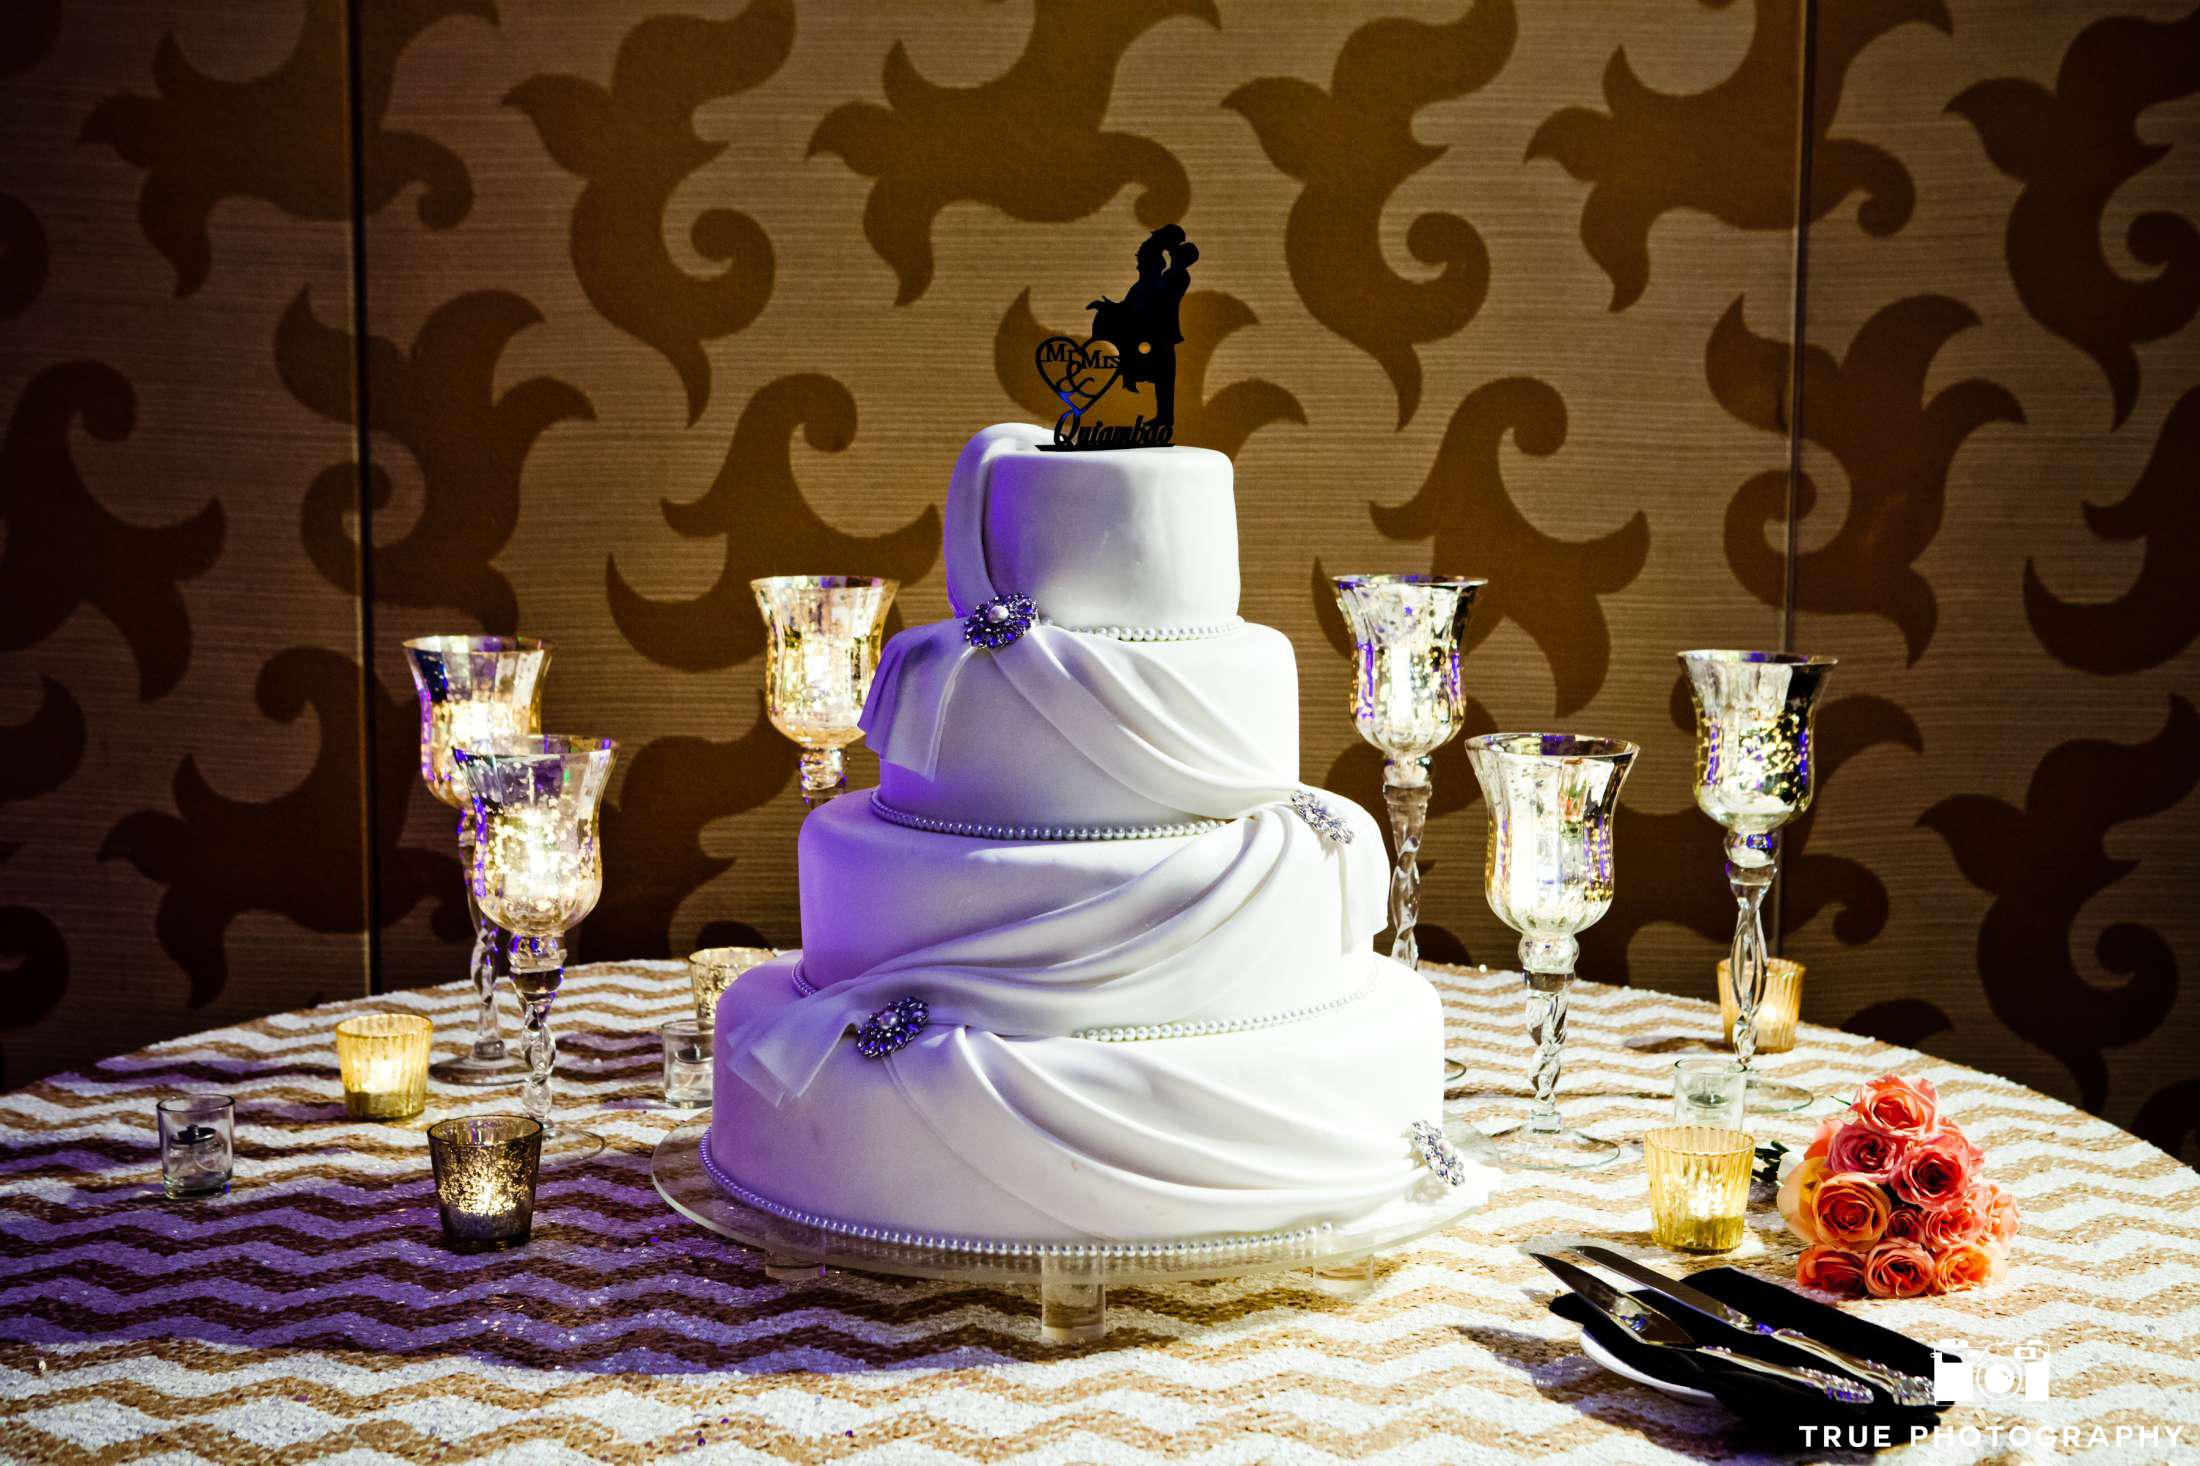 A wedding cake deserves to be highlighted and not just sit in a dark corner.